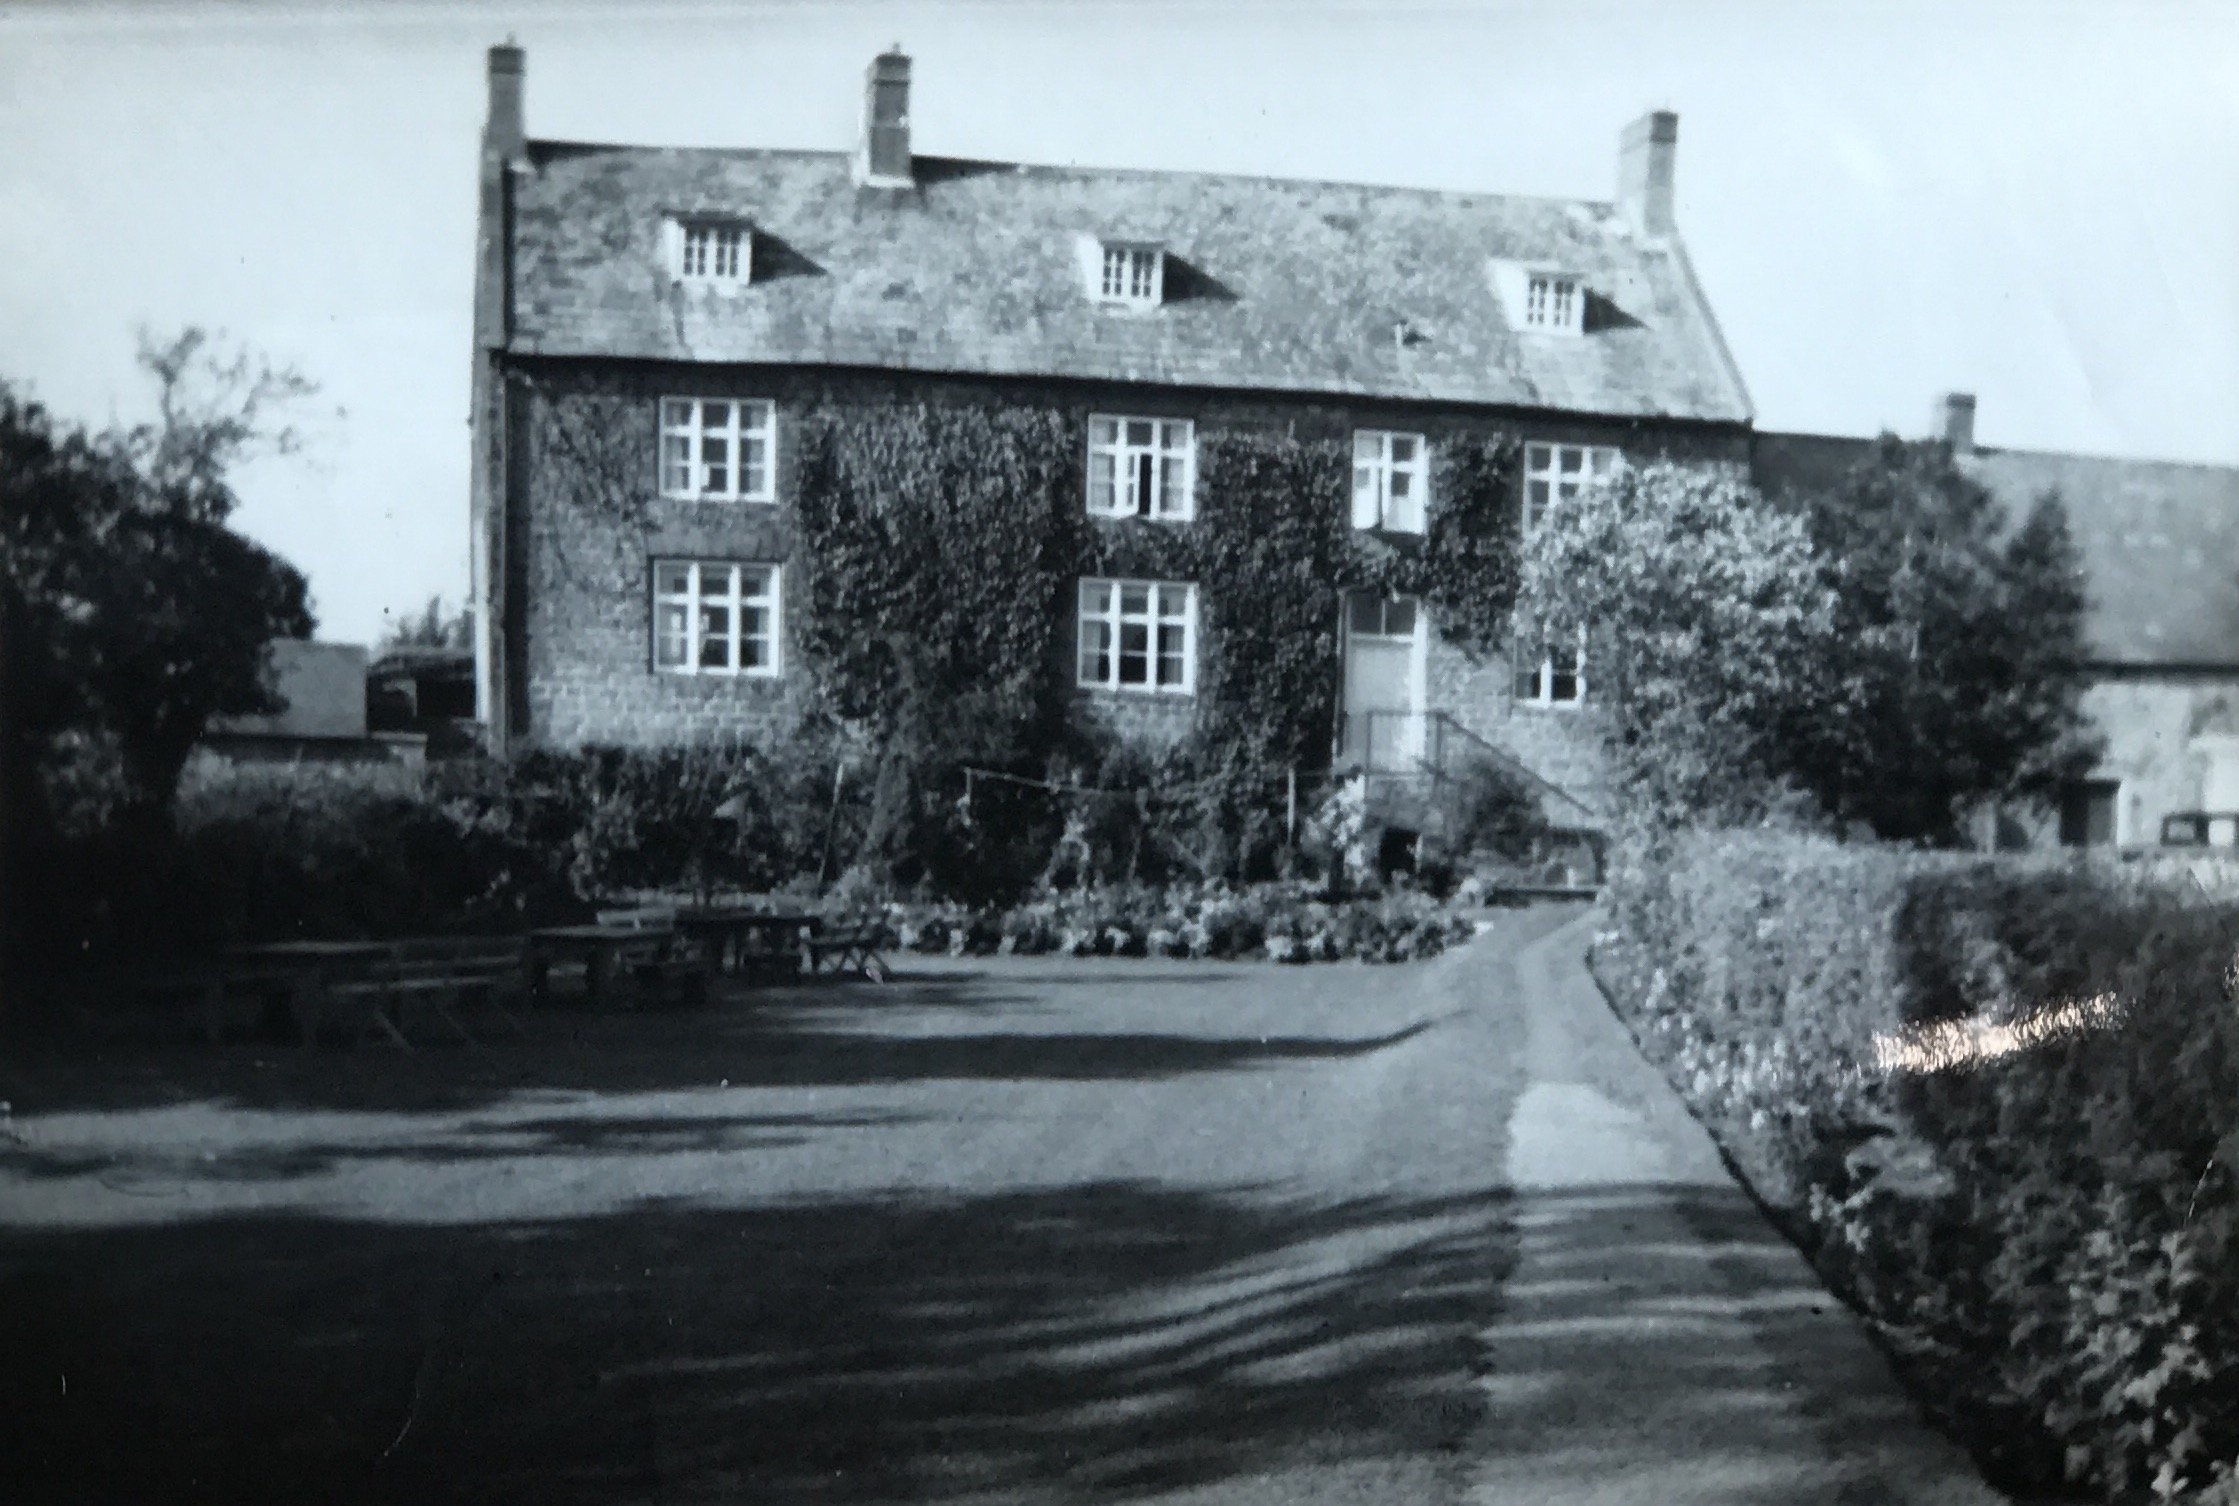 Vintage picture of the worlds end pub